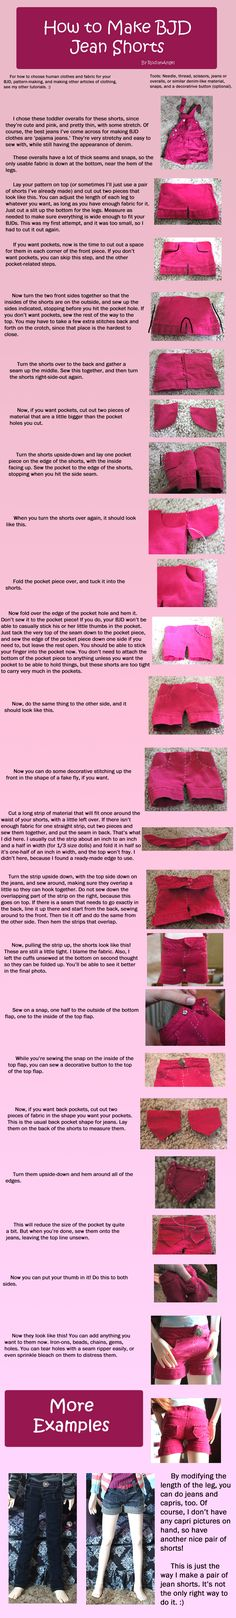 How to Make BJD Jean Shorts by RodianAngel.deviantart.com on @deviantART